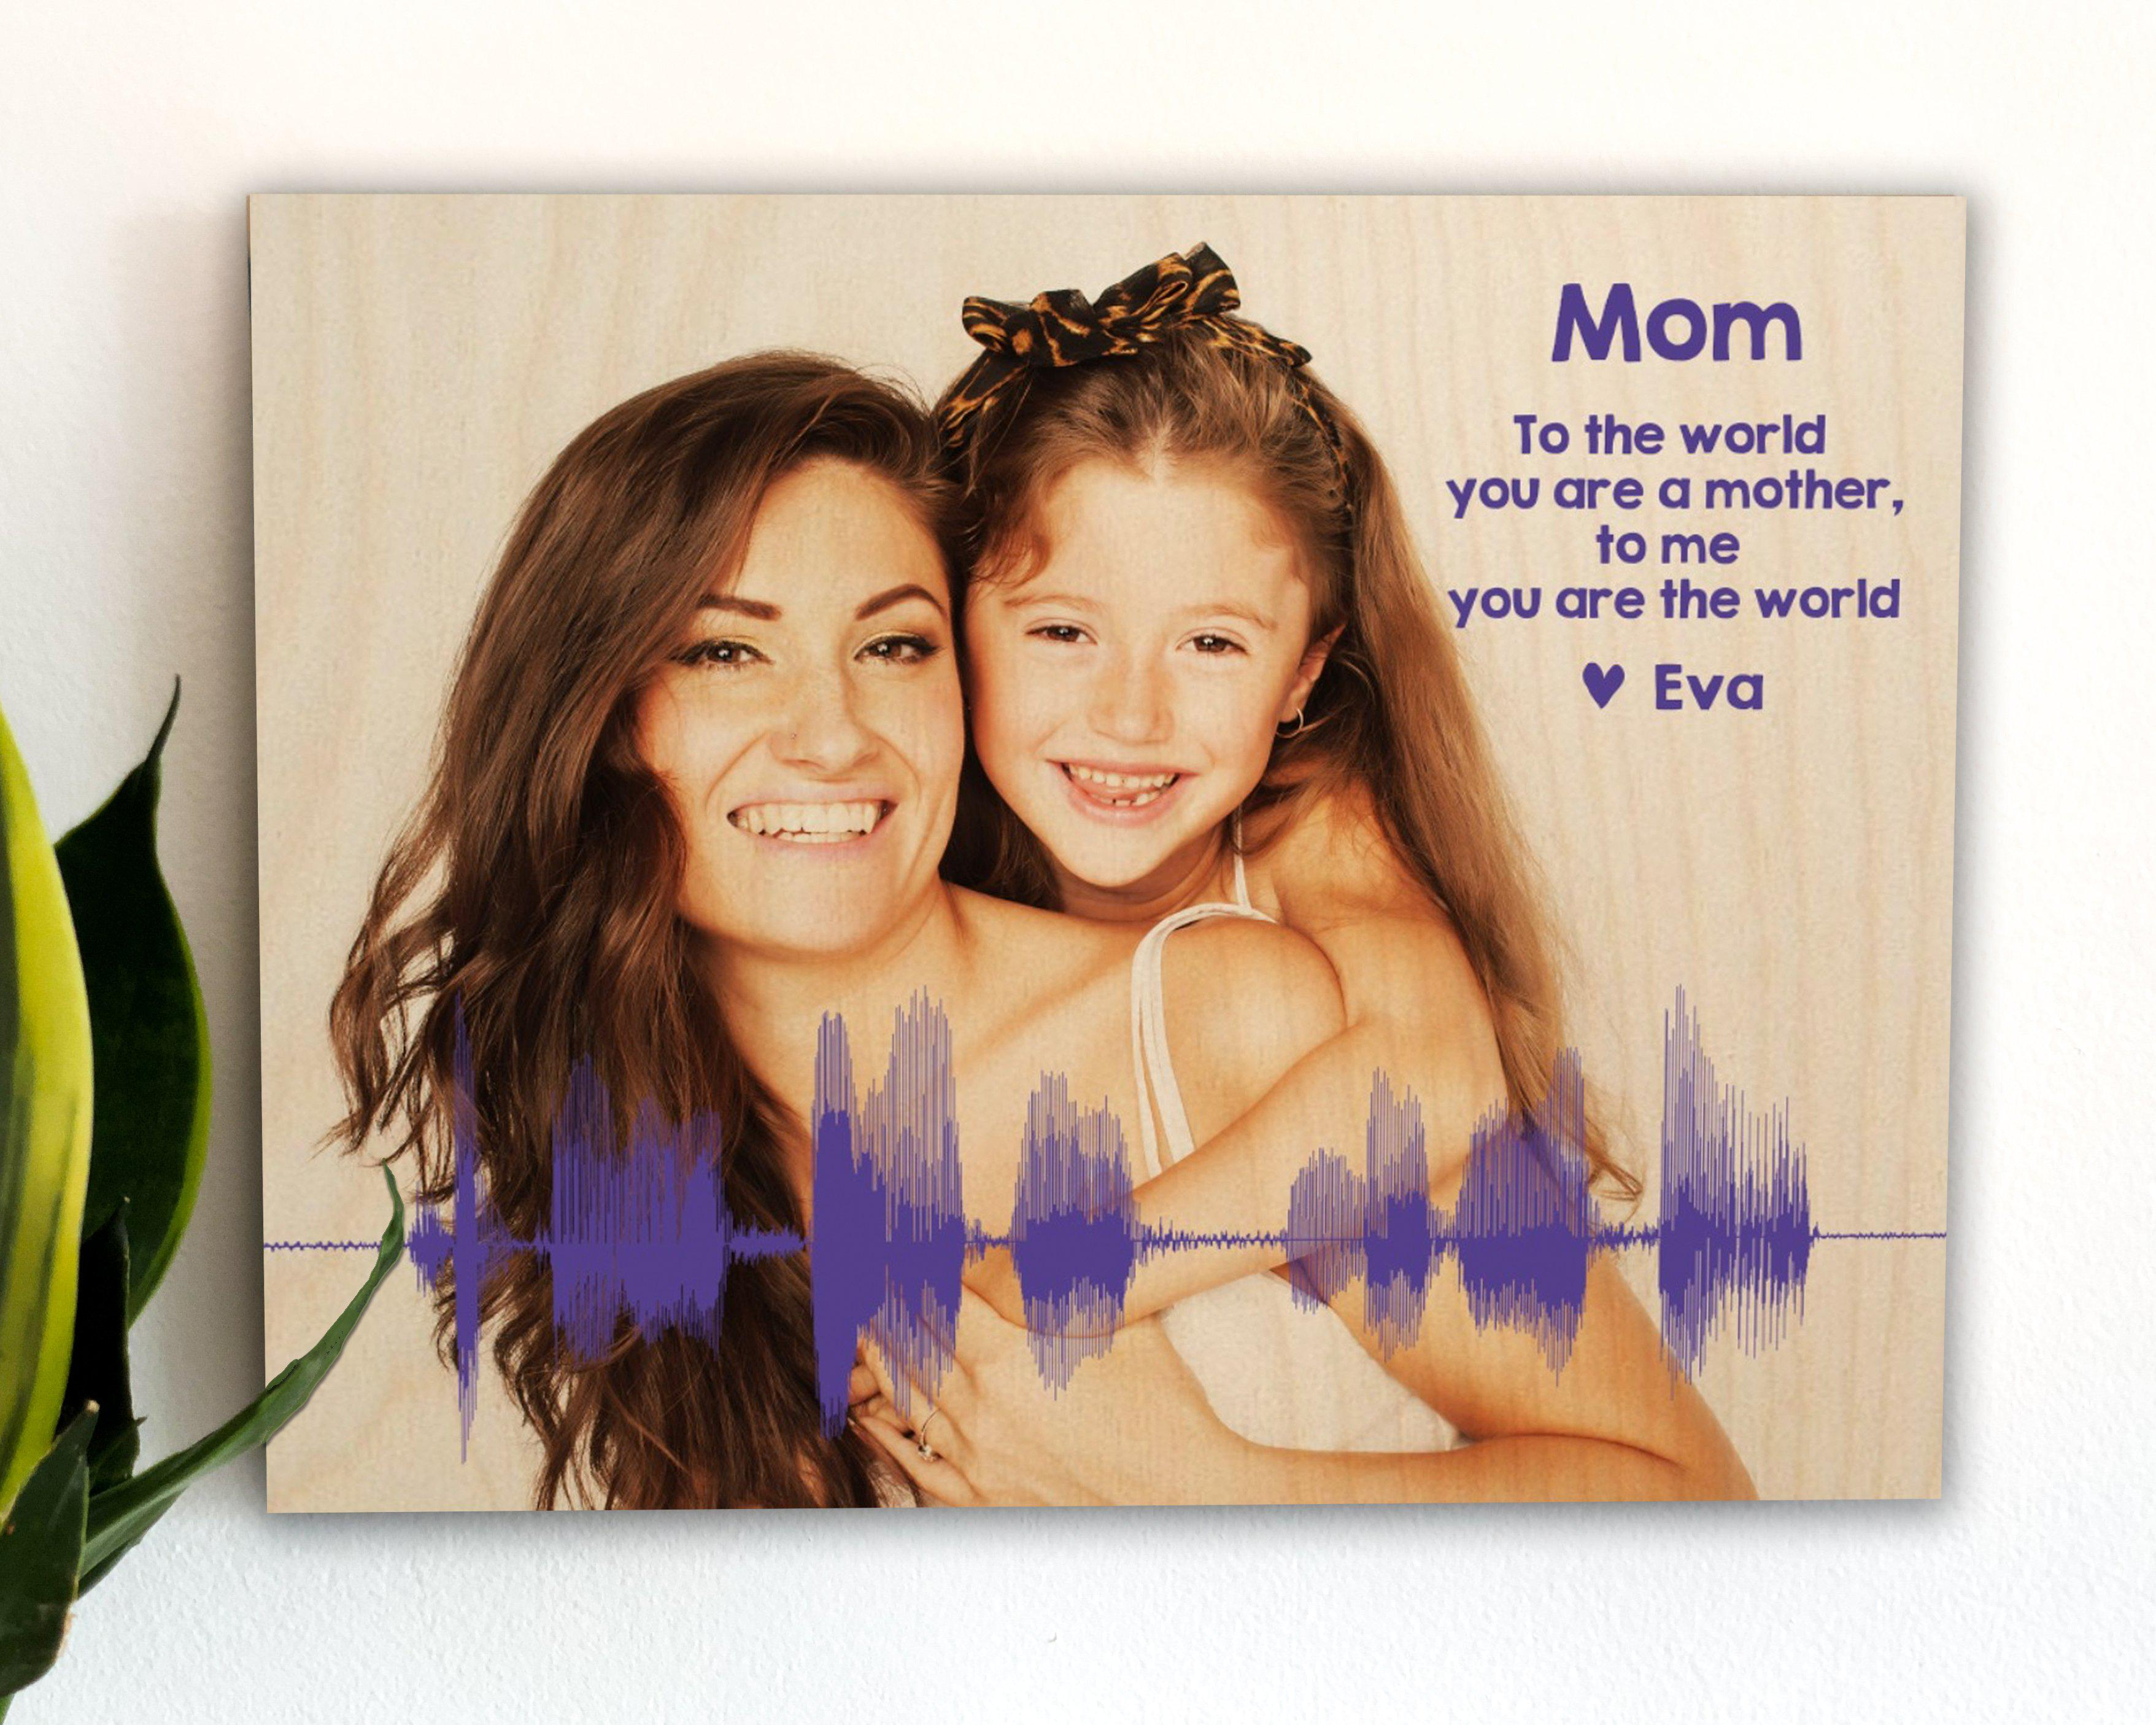 Mothers Day Gift From Daughter Wood Photo Gift for Mom - Artsy Voiceprint